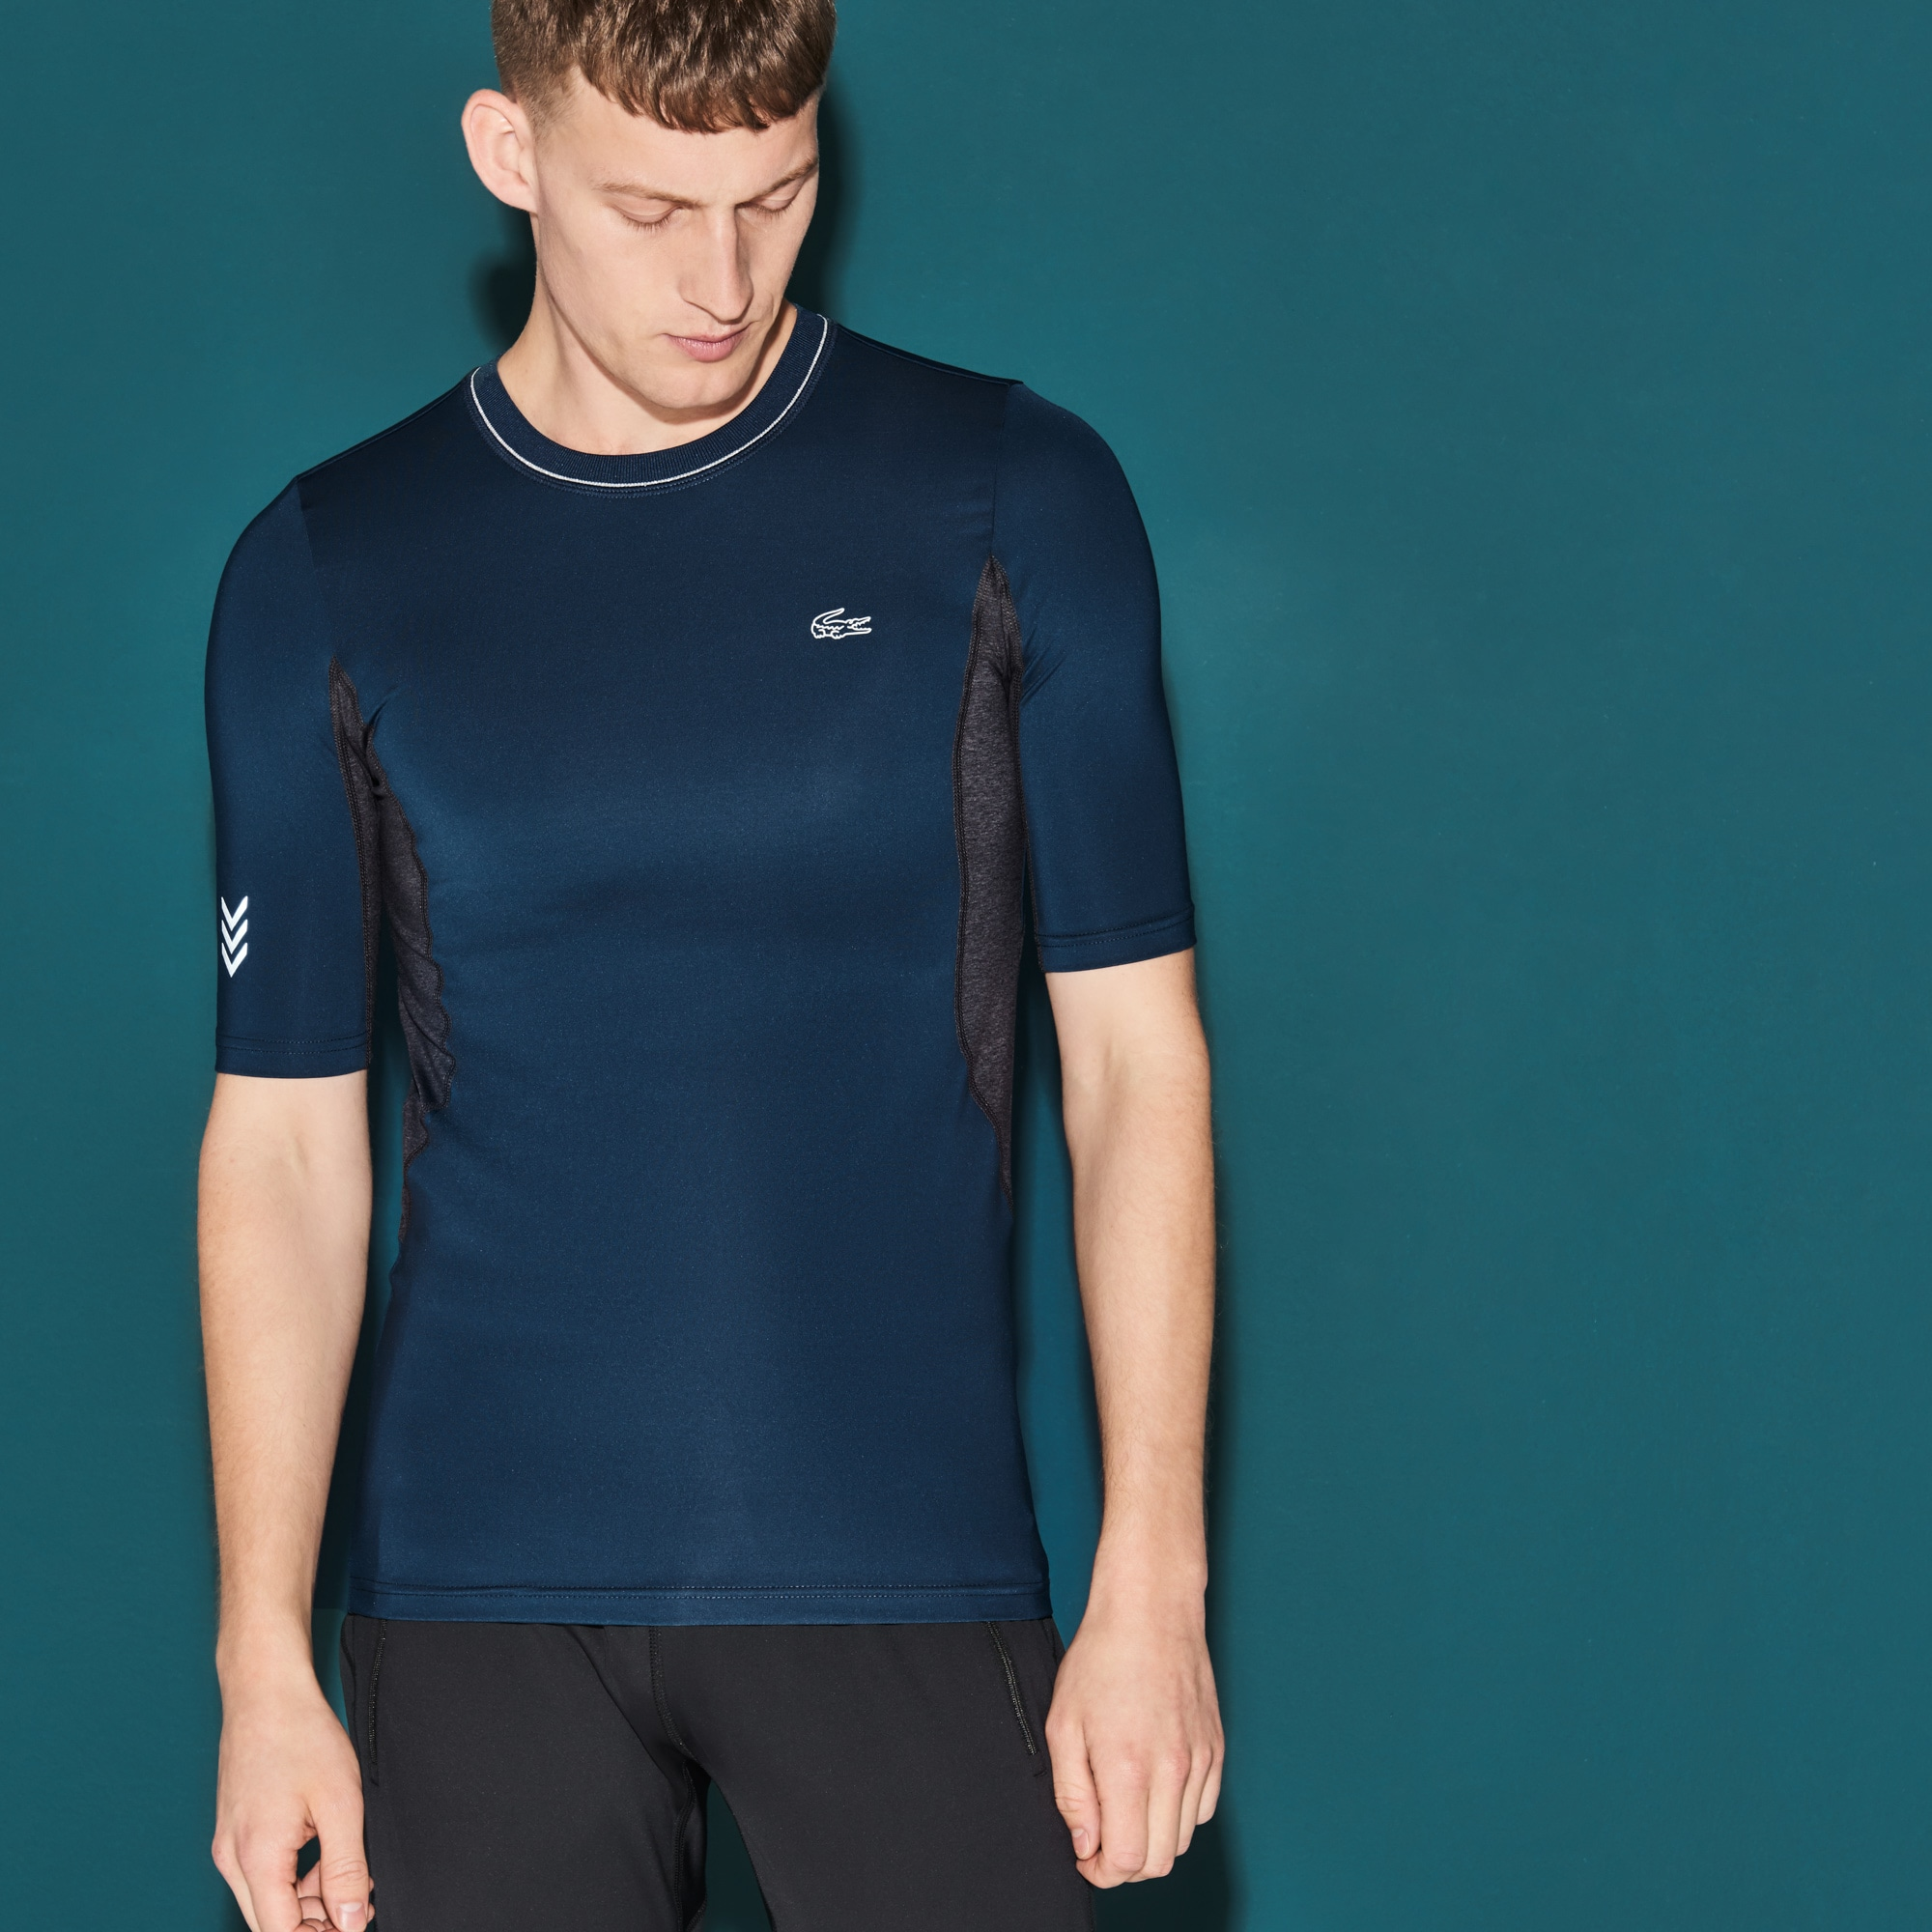 Men's SPORT Compression Tennis T-Shirt